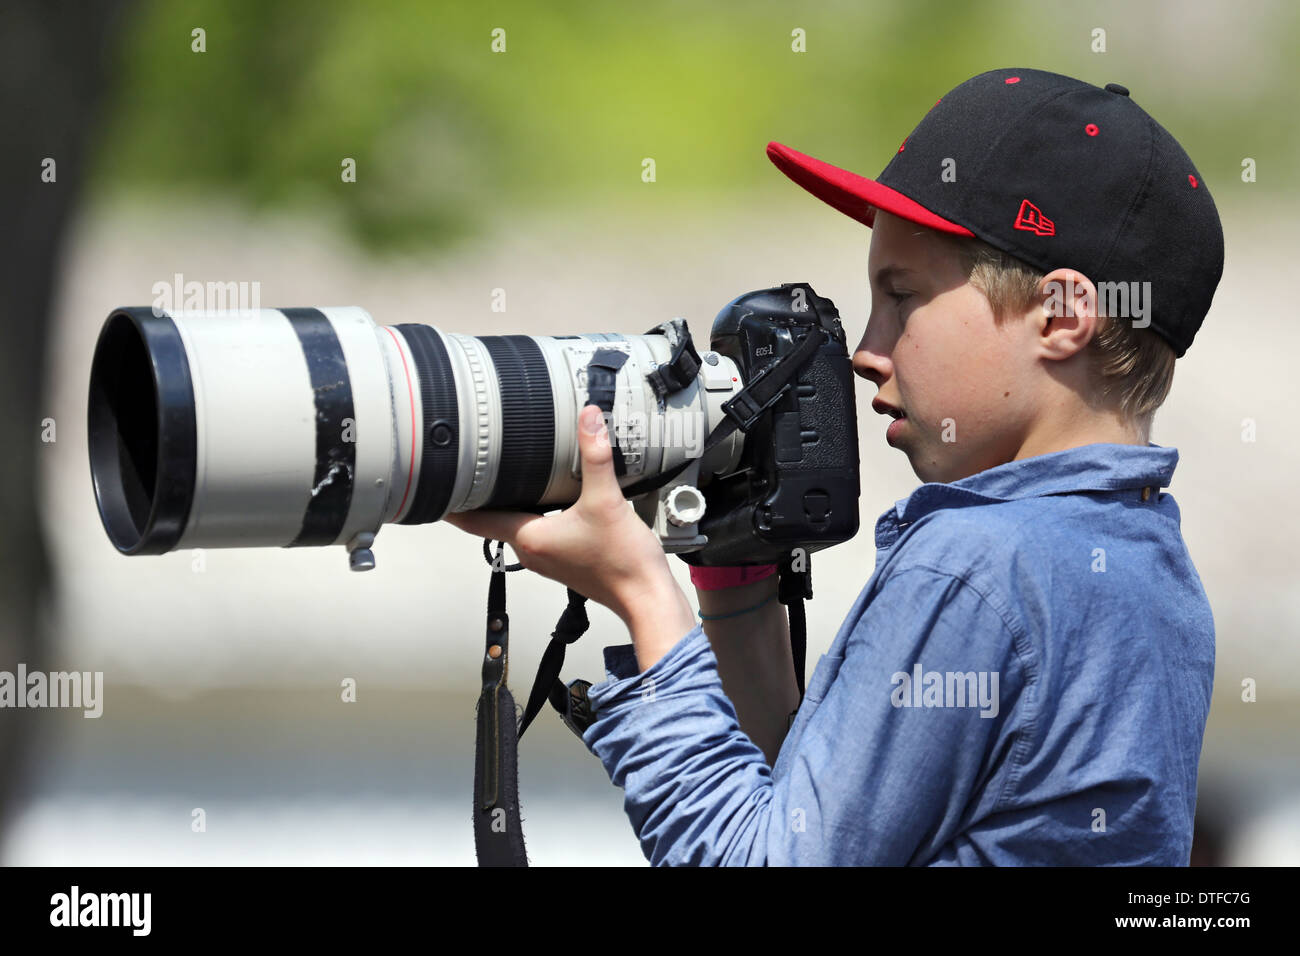 Hoppe Garden, Germany, boy photographed with a telephoto lens - Stock Image